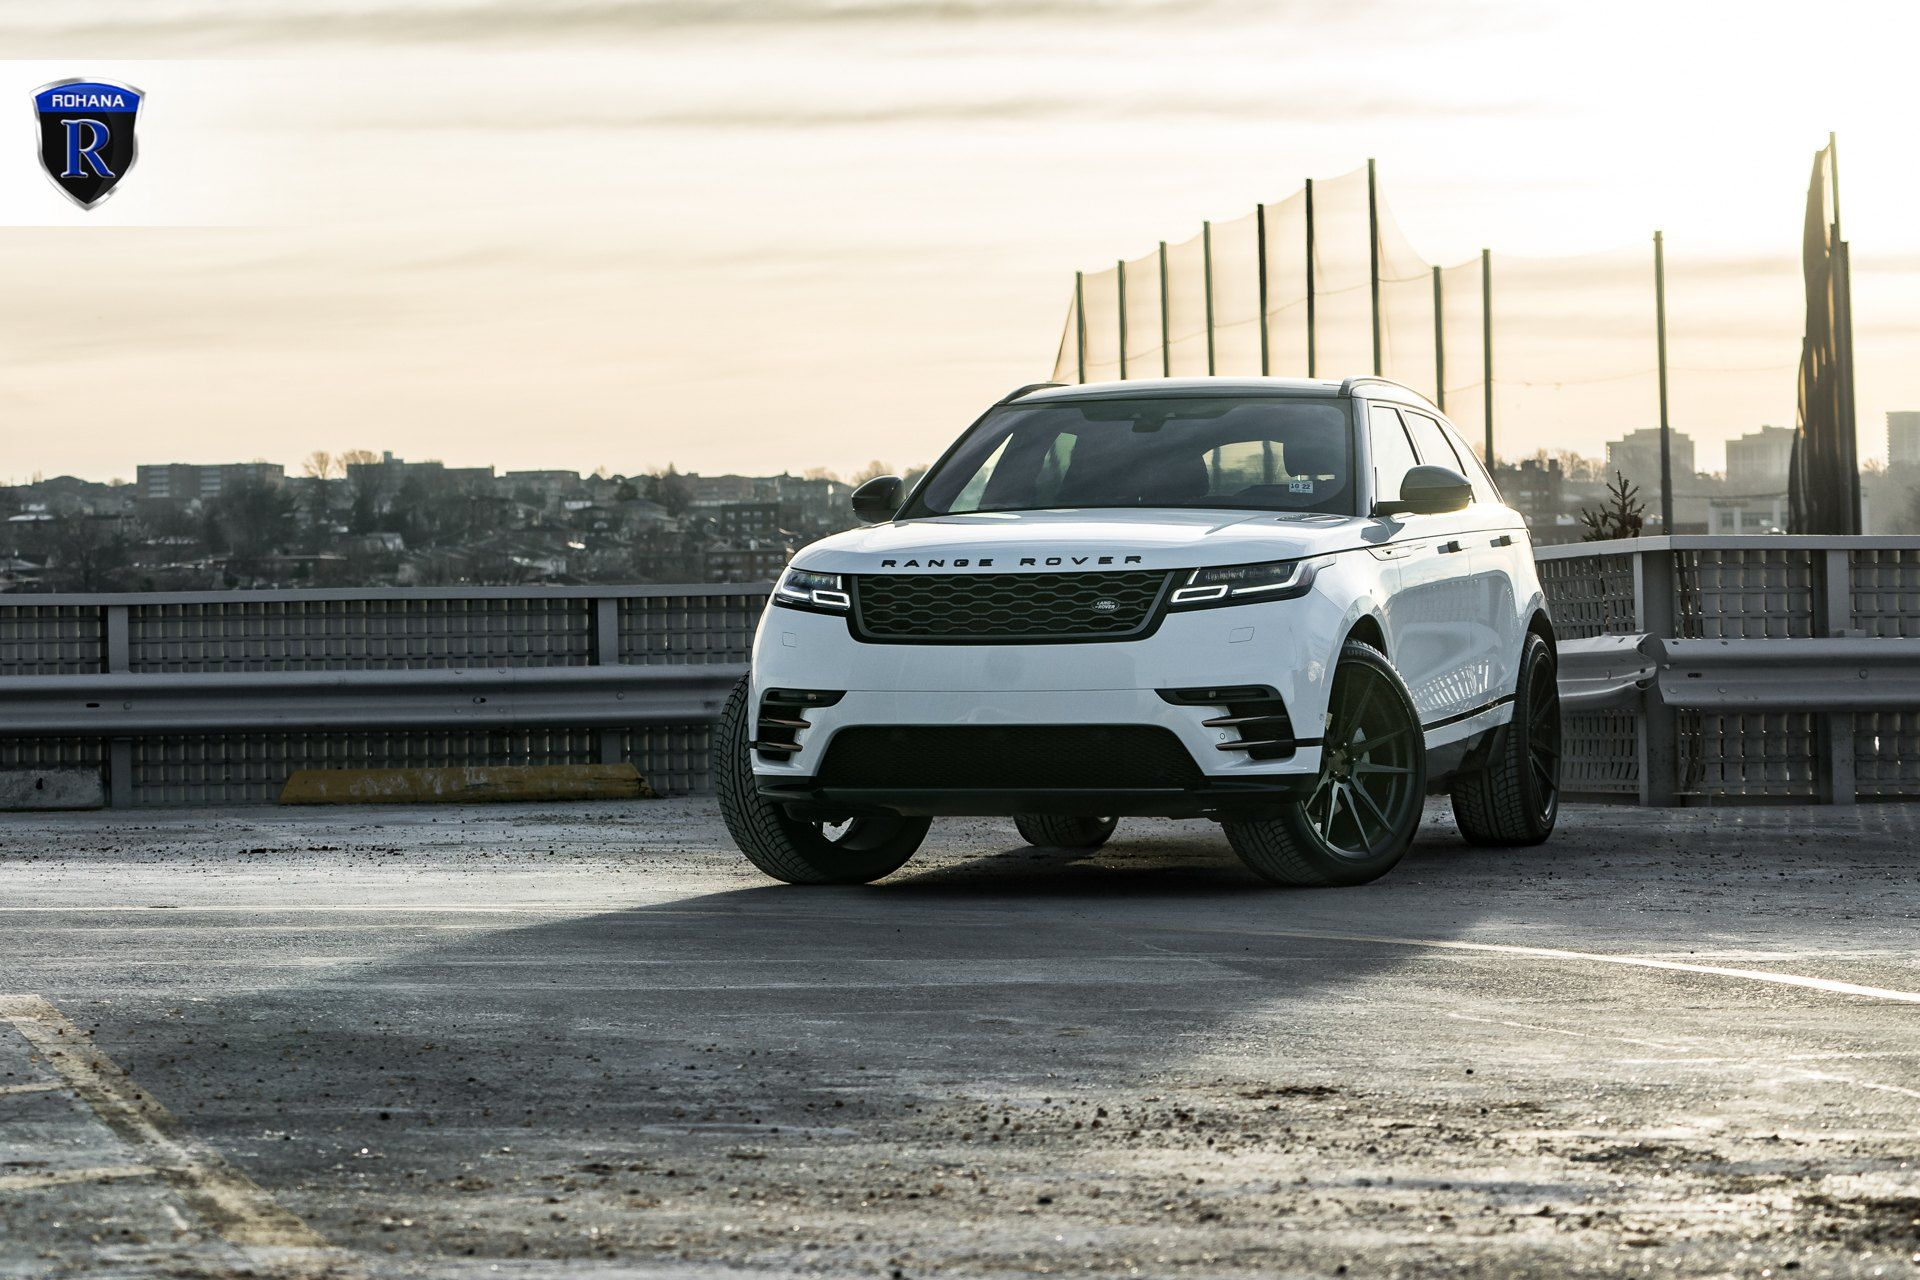 Need A Burst Of Inspiration Take A Look At The White Range Rover Velar Rocking Gloss Black Rohana Wheels Photo Range Rover White Range Rover Range Rover Black